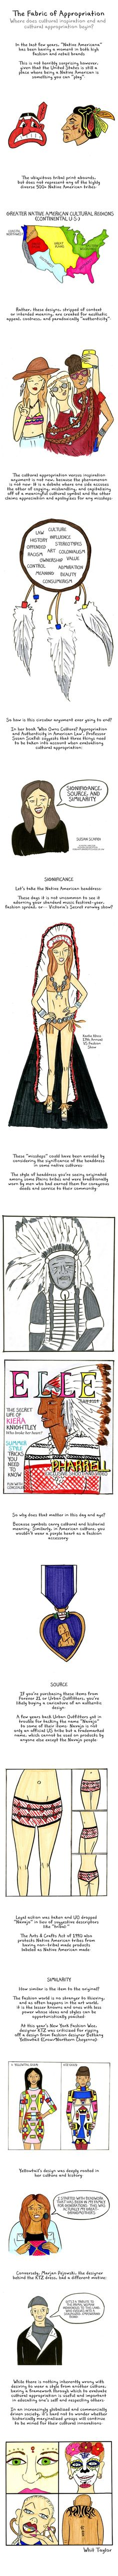 This fascinating comic explains why we shouldn't use some Native American designs.